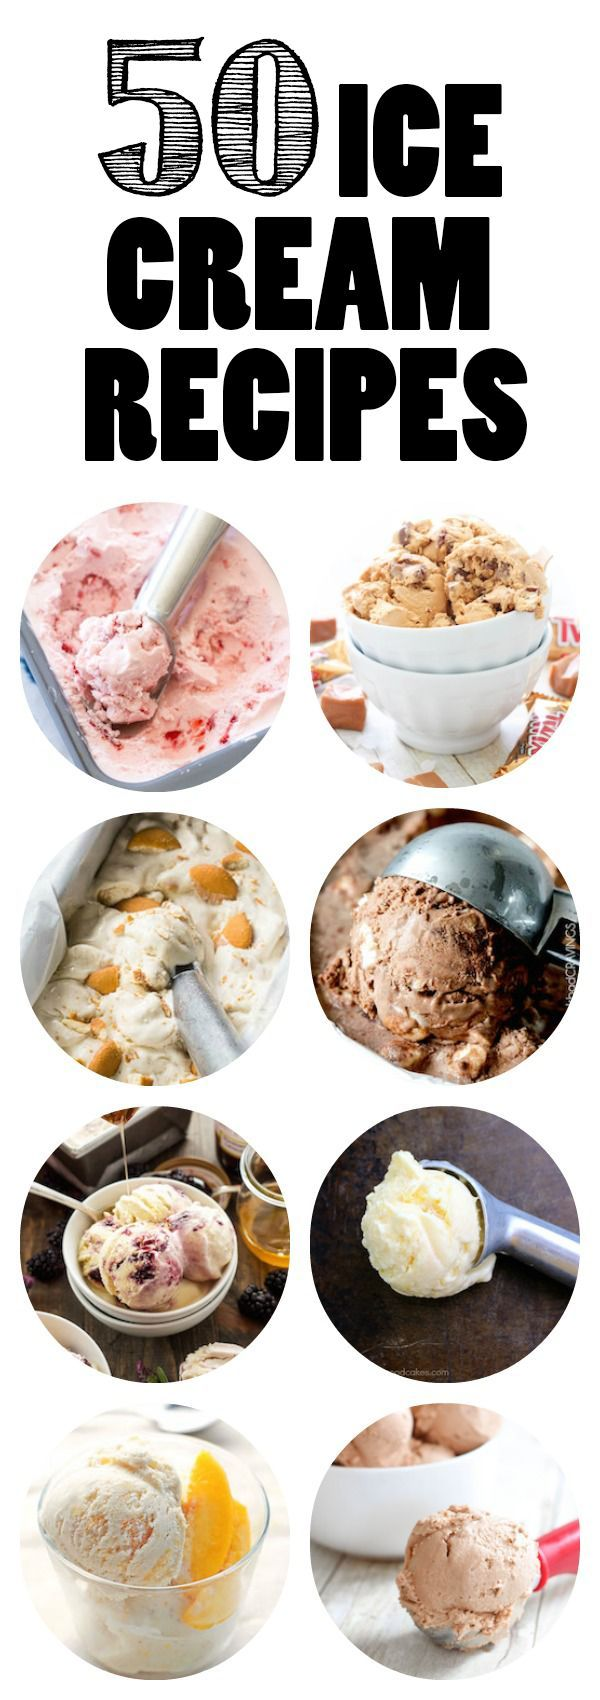 50 Ice Cream Recipes - Every one of these is an ice cream recipe that I want to try! And they are all from such awesome bloggers.  http://www.highheelsandgrills.com/50-ice-cream-recipes-roundup/